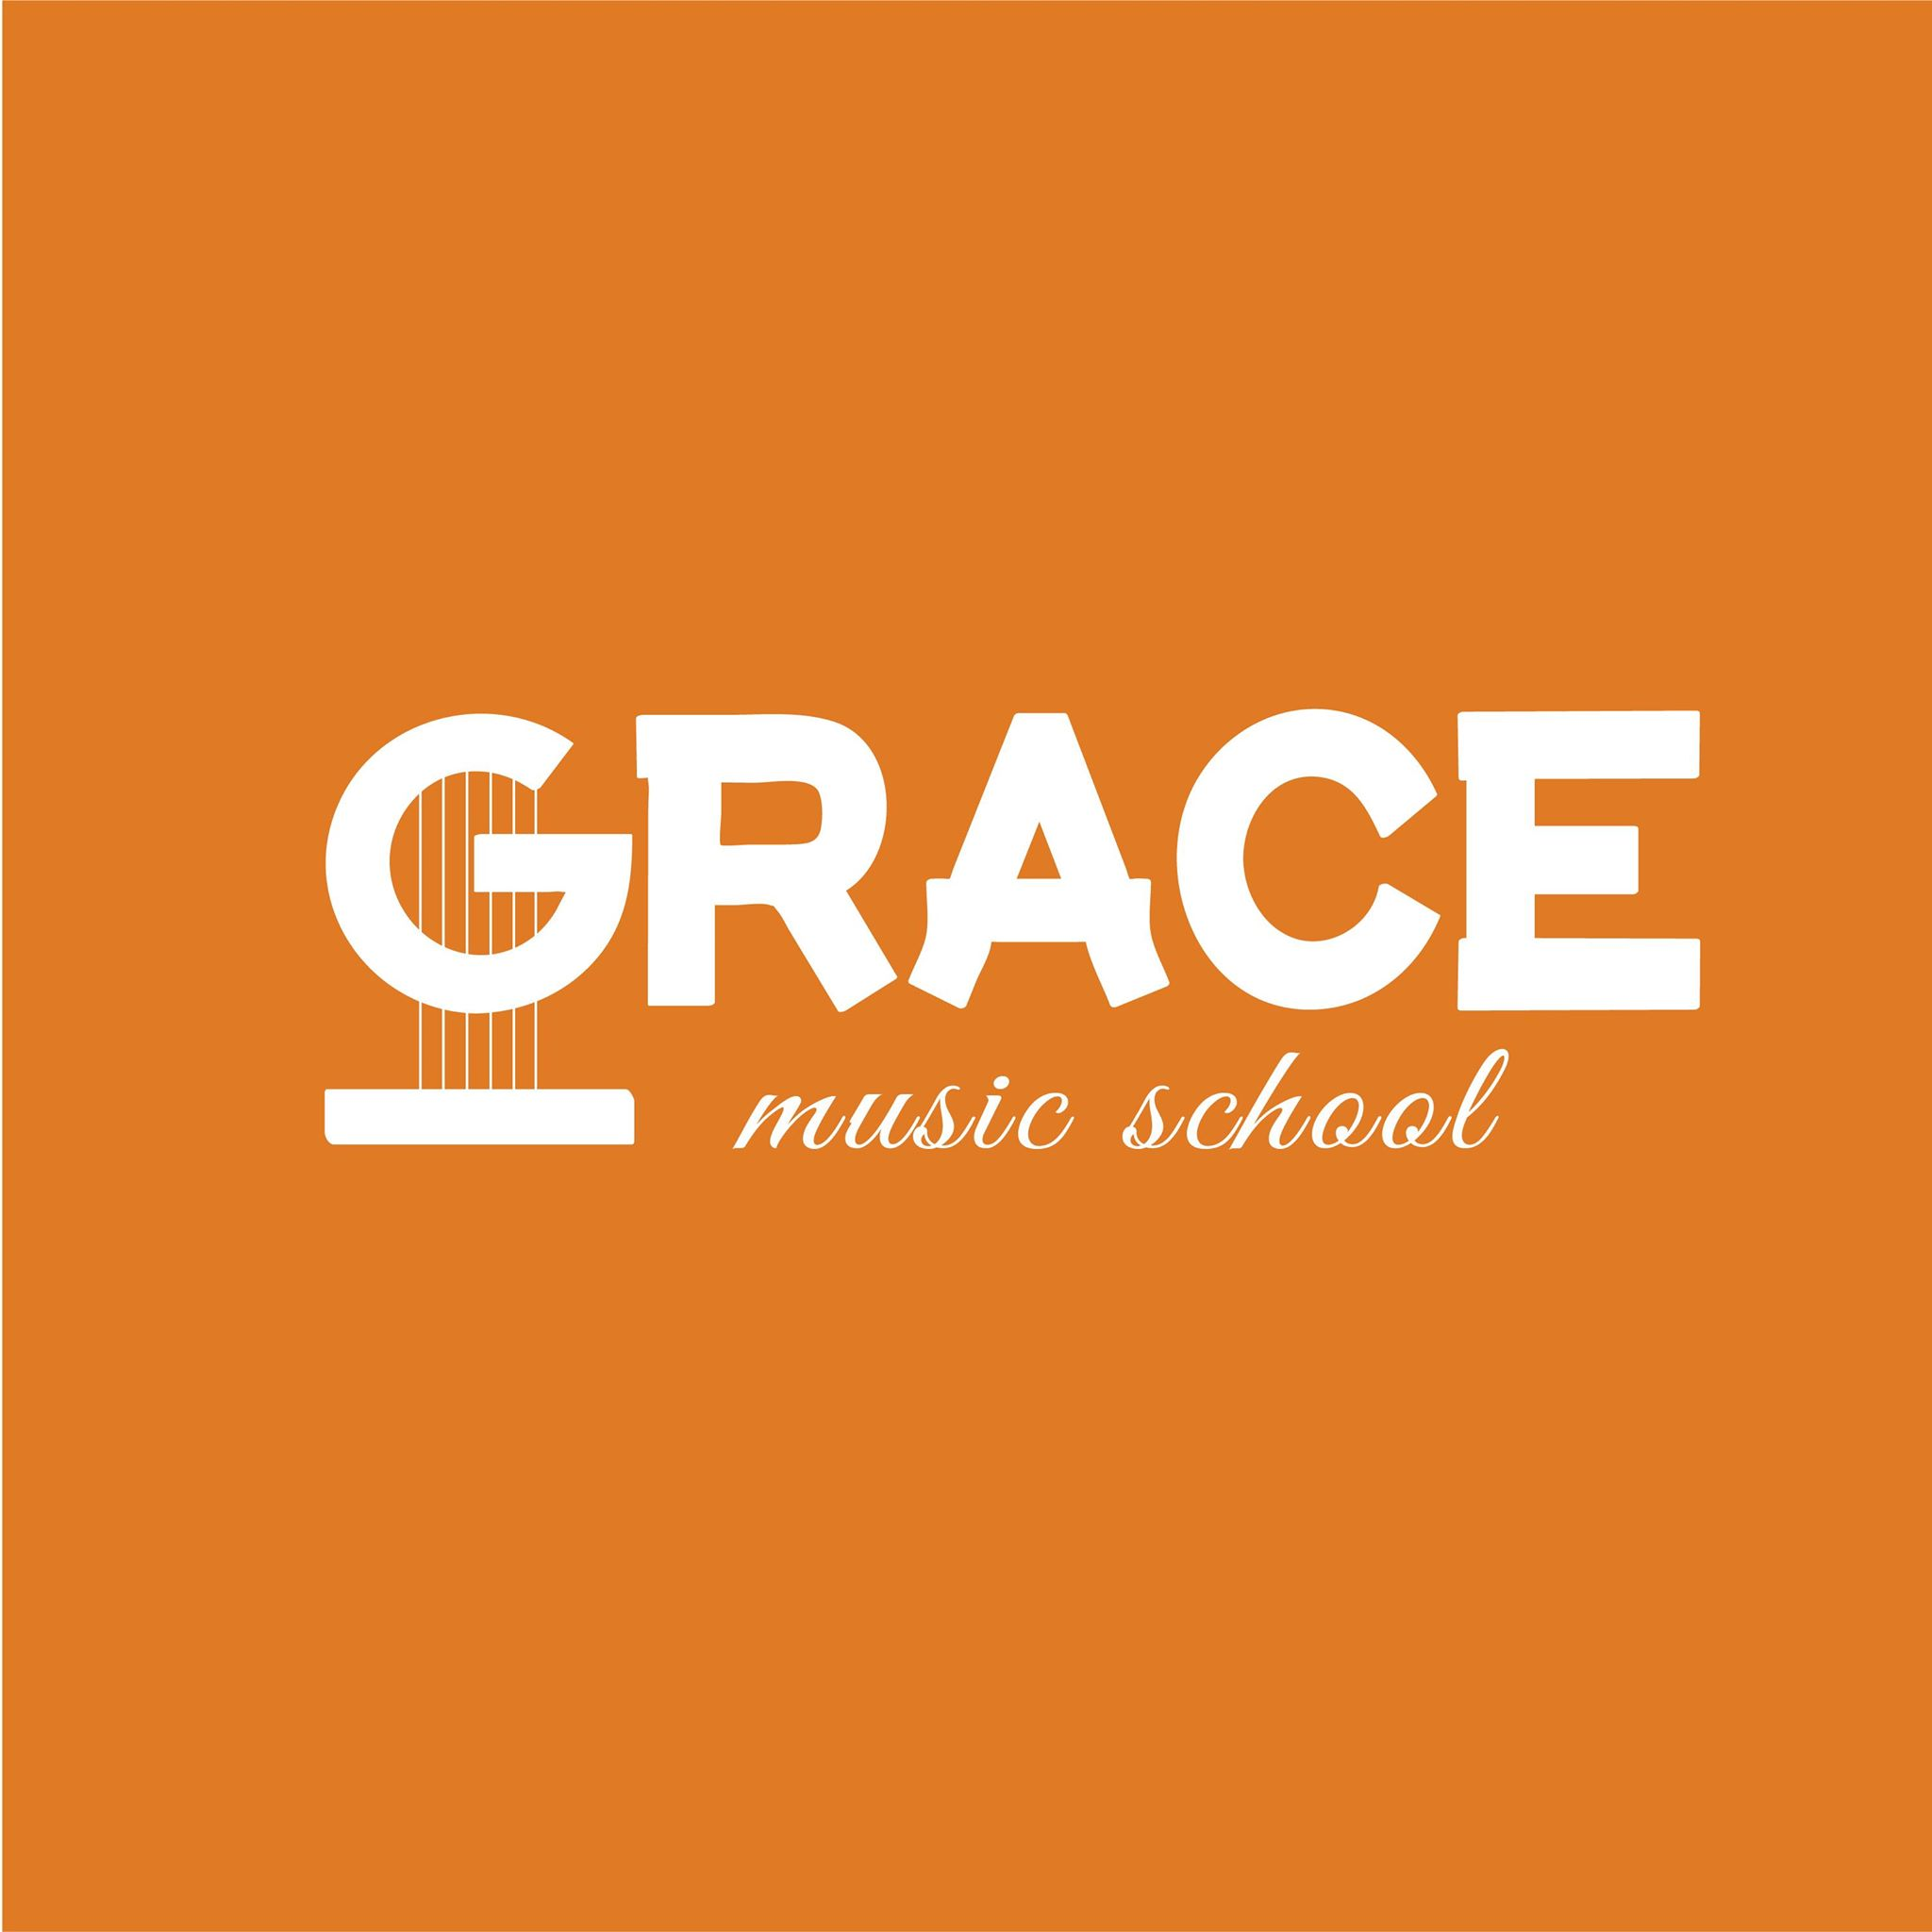 Grace Music School | Make Your Soul Better